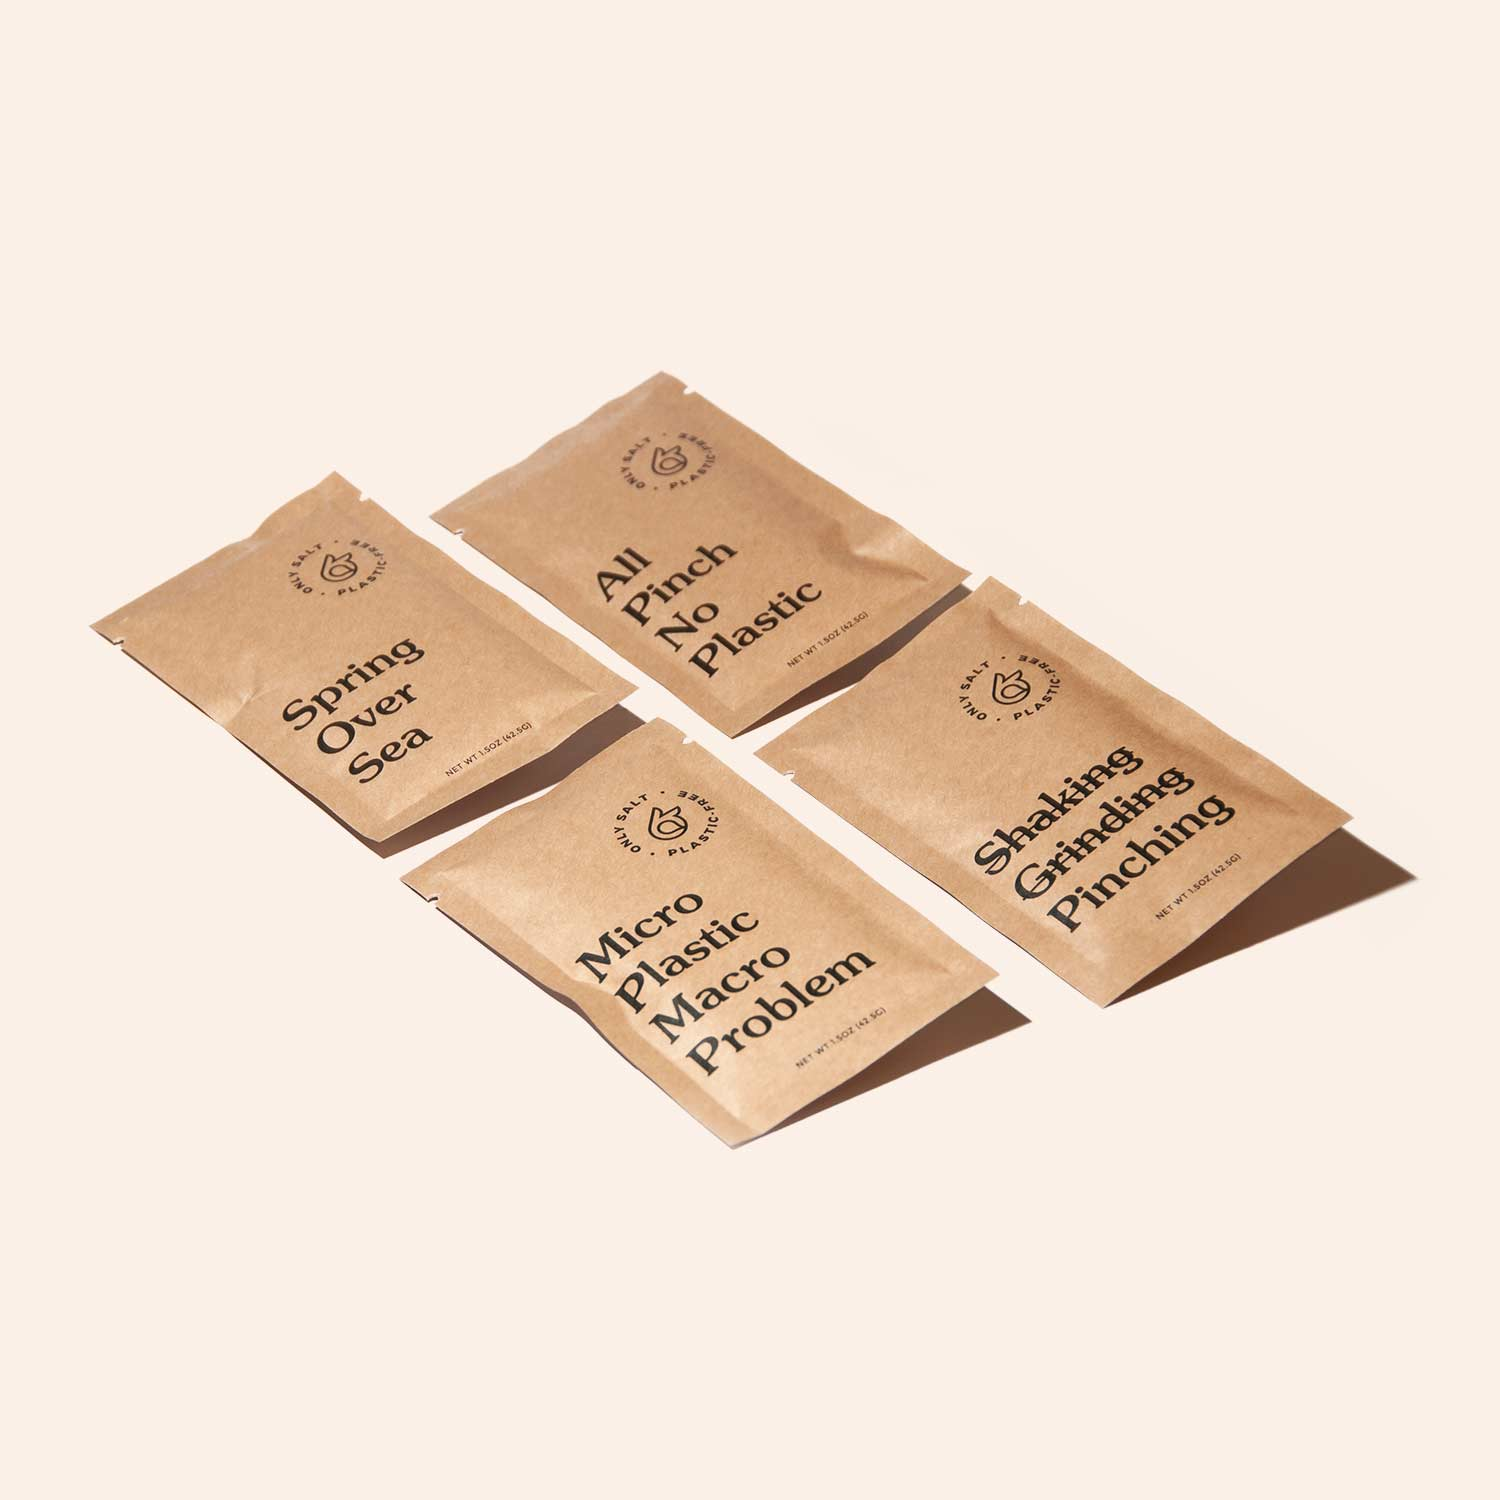 Four spring salt packets lay on a surface.